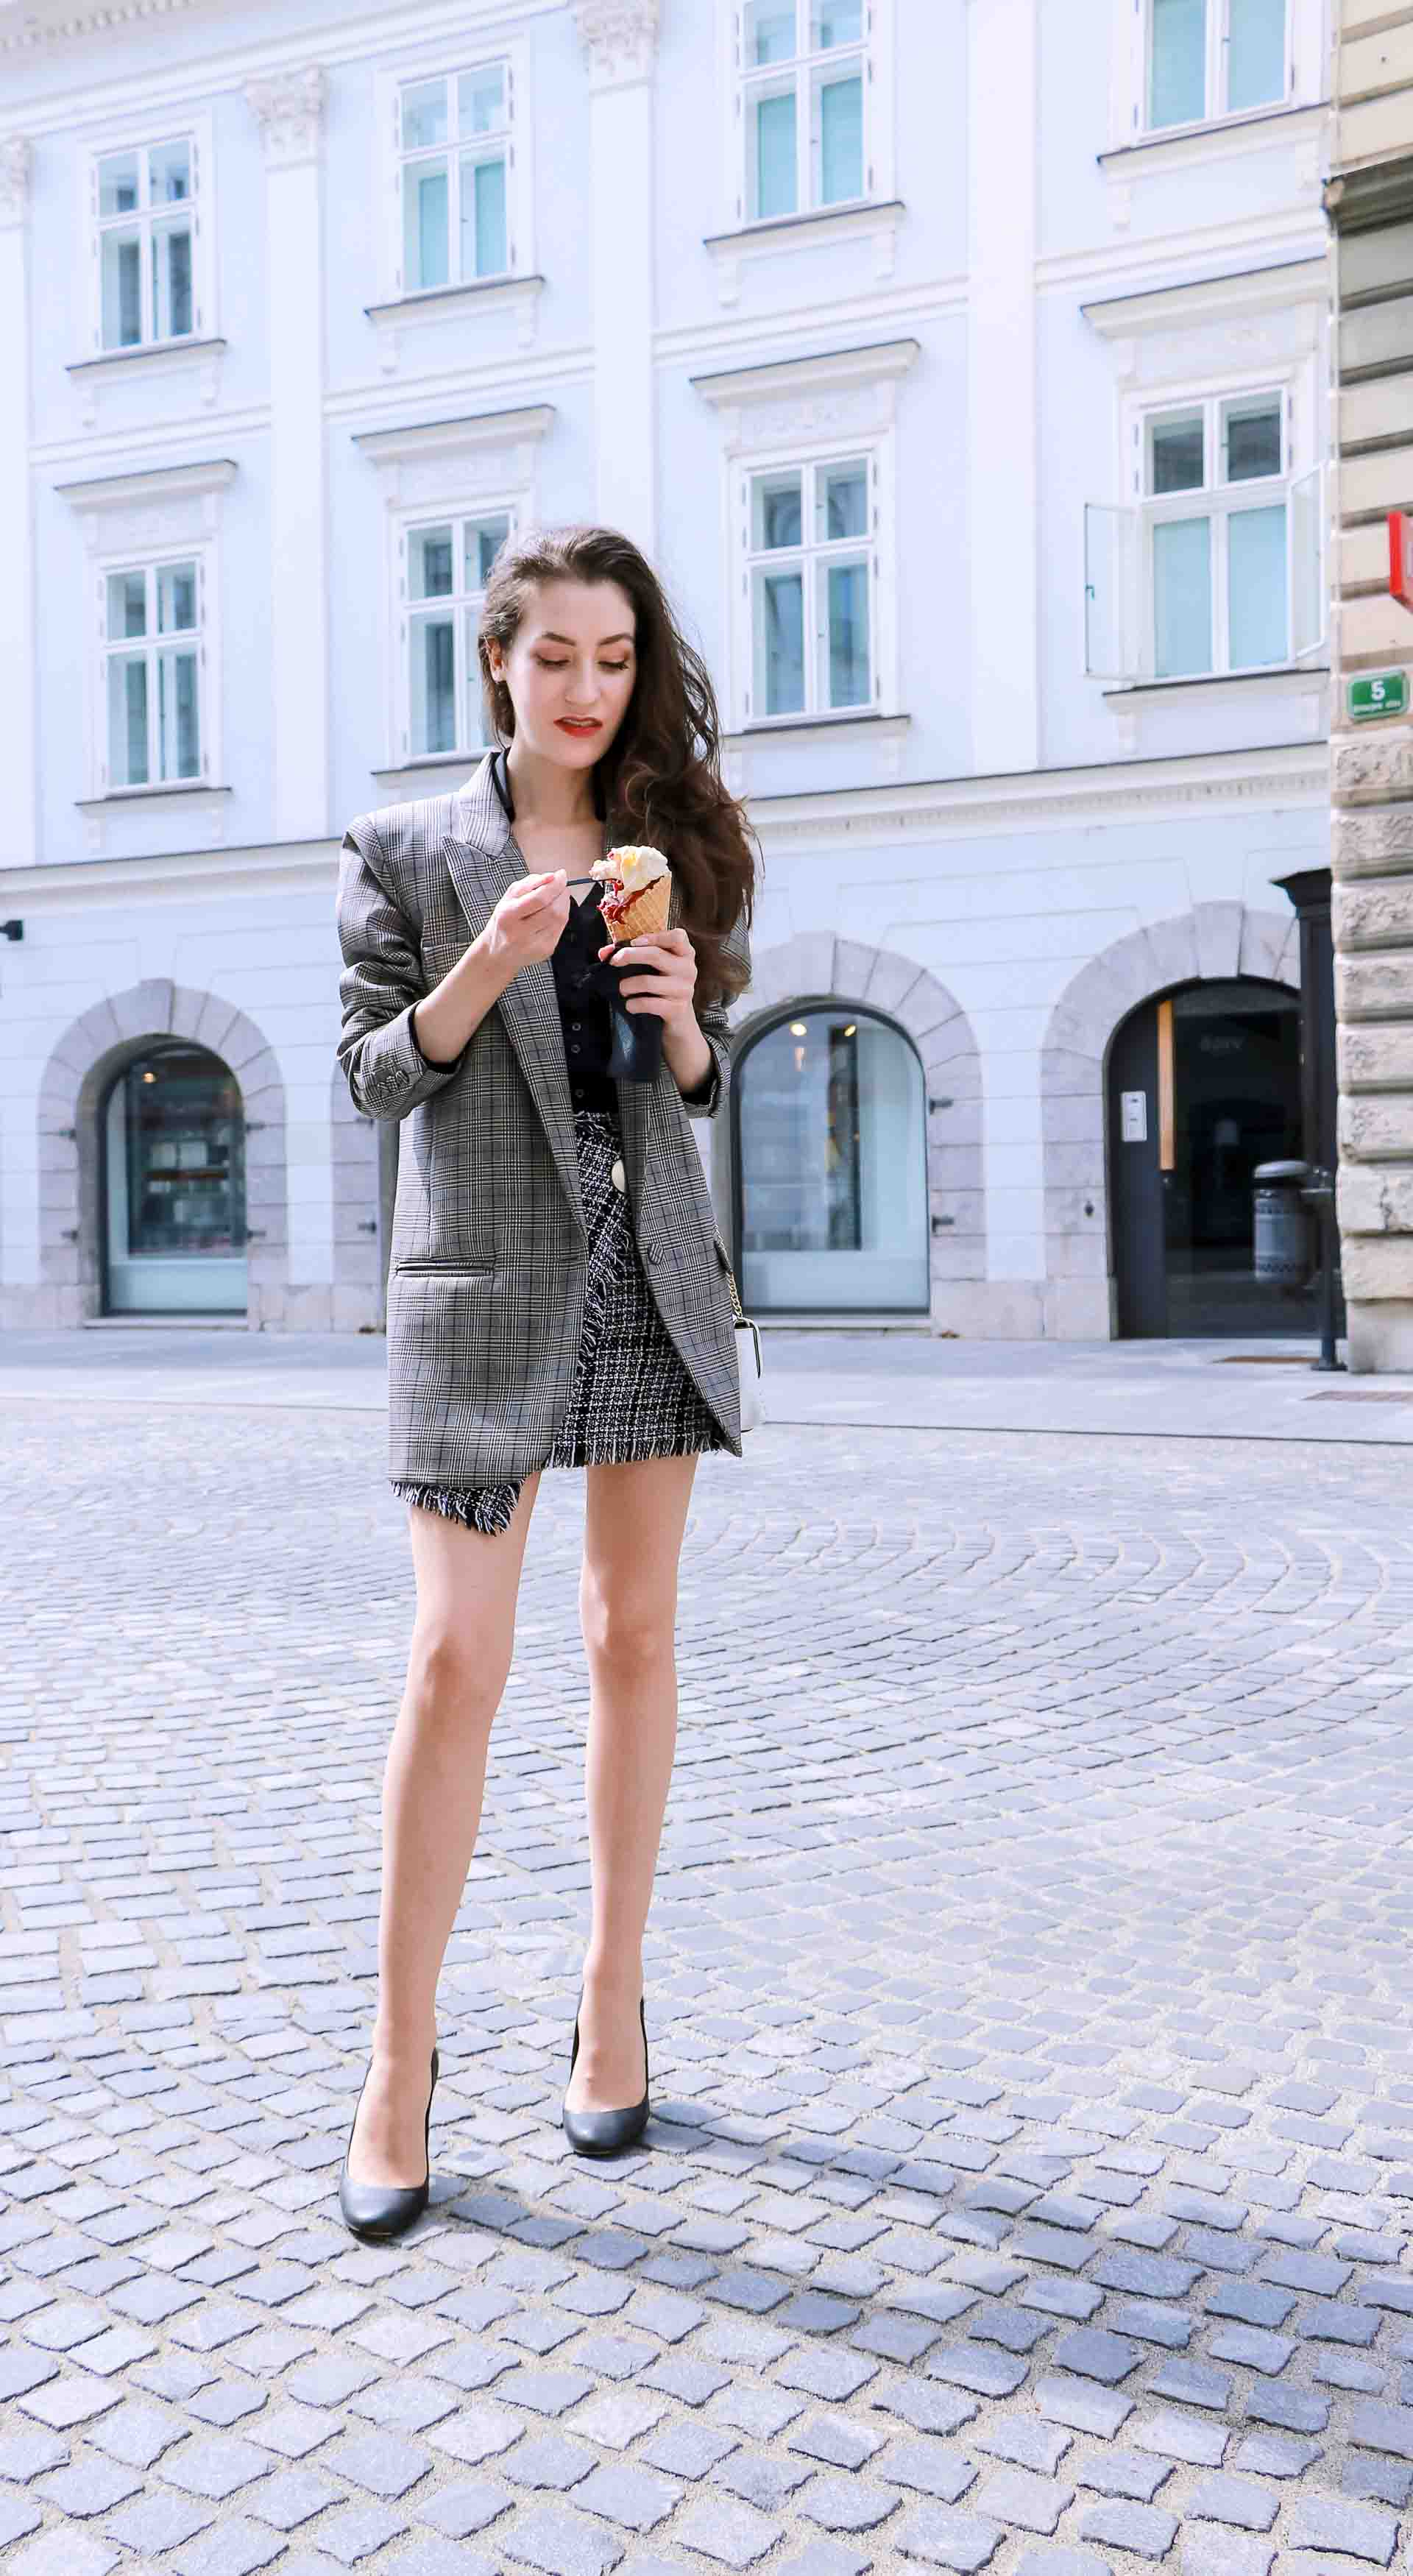 Fashion Blogger Veronika Lipar of Brunette from Wall Street dressed in Erika Cavallini oversized boyfriend checked blazer with short tweed black and white mini skirt from streets, black pumps and white chain strap shoulder bag while eating ice cream in sugar cone